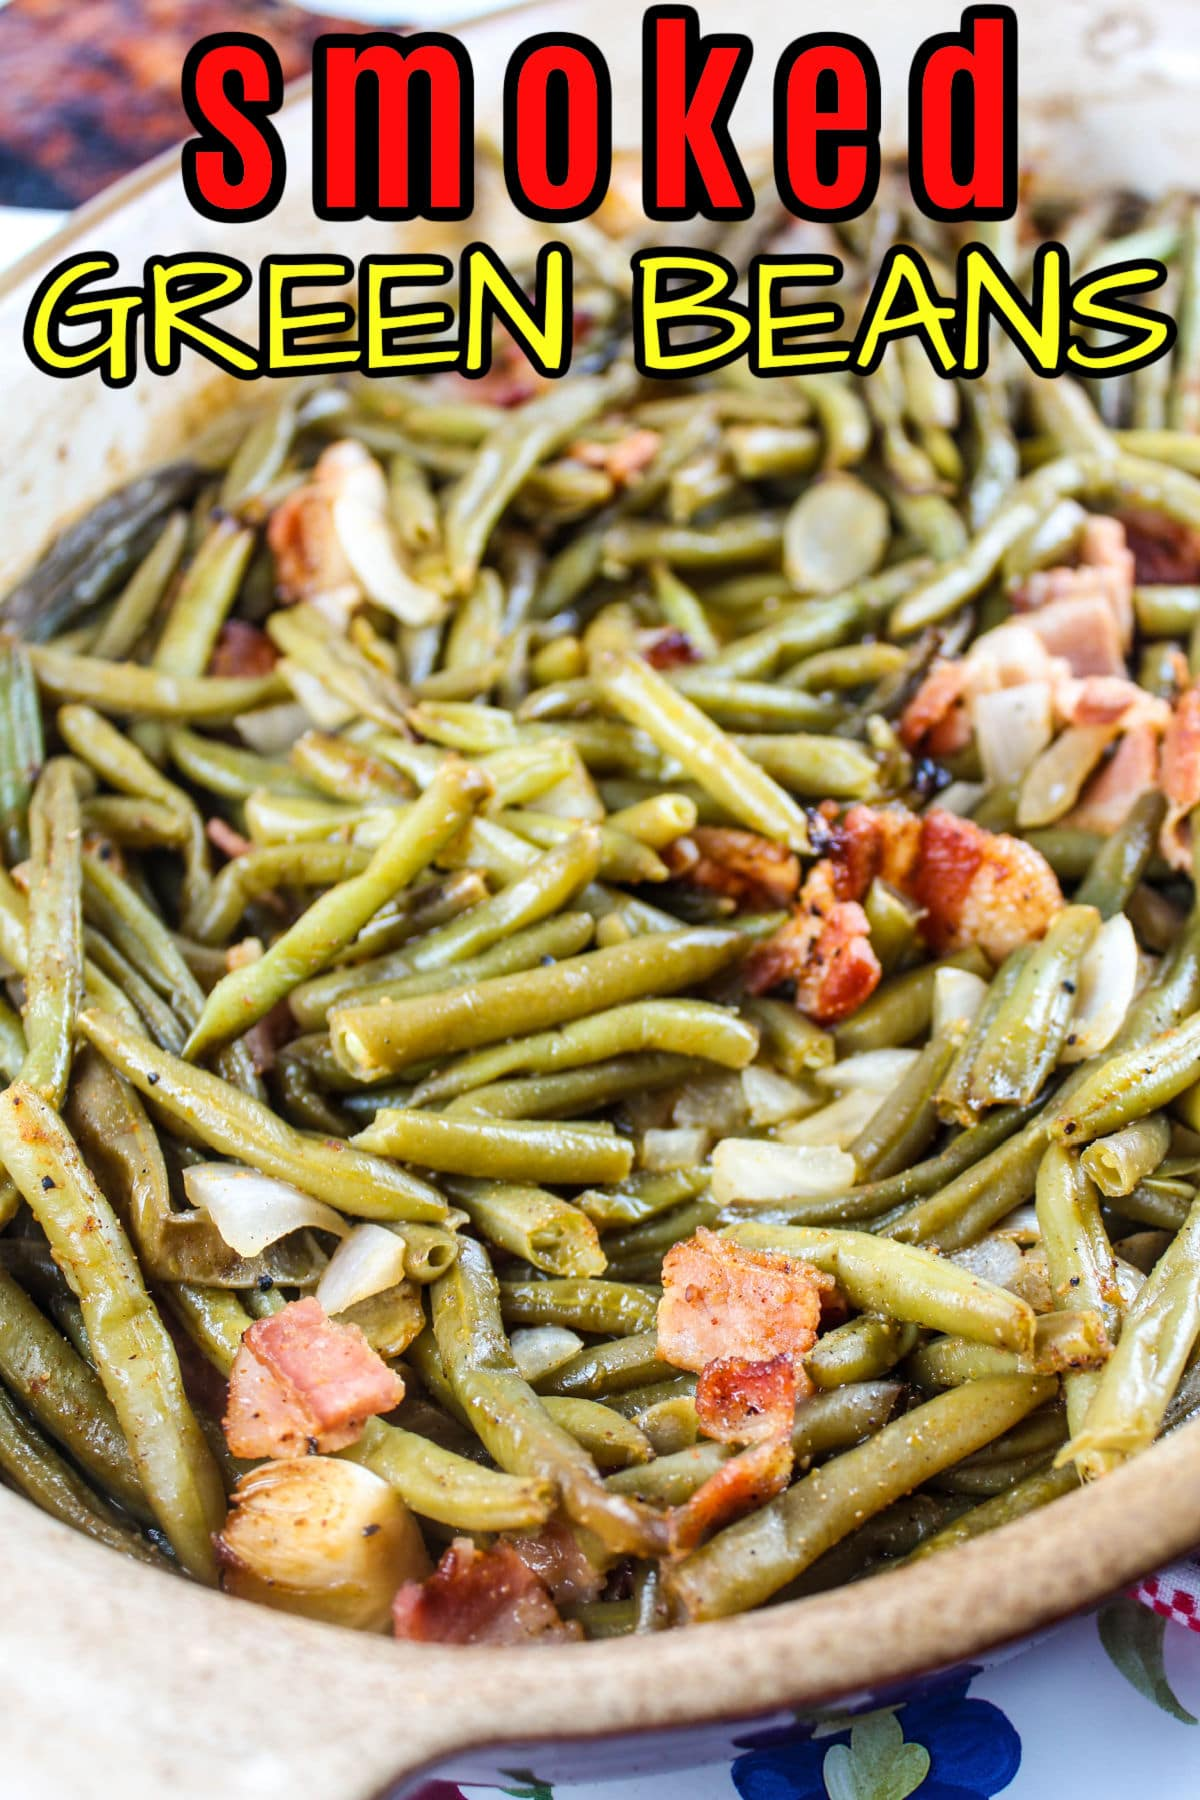 Smoked Green Beans are heavenly! The best part is you can put it together in minutes and then pop it on your smoker! I added bacon, onion and my favorite BBQ rub just to make it even more delicious. via @foodhussy